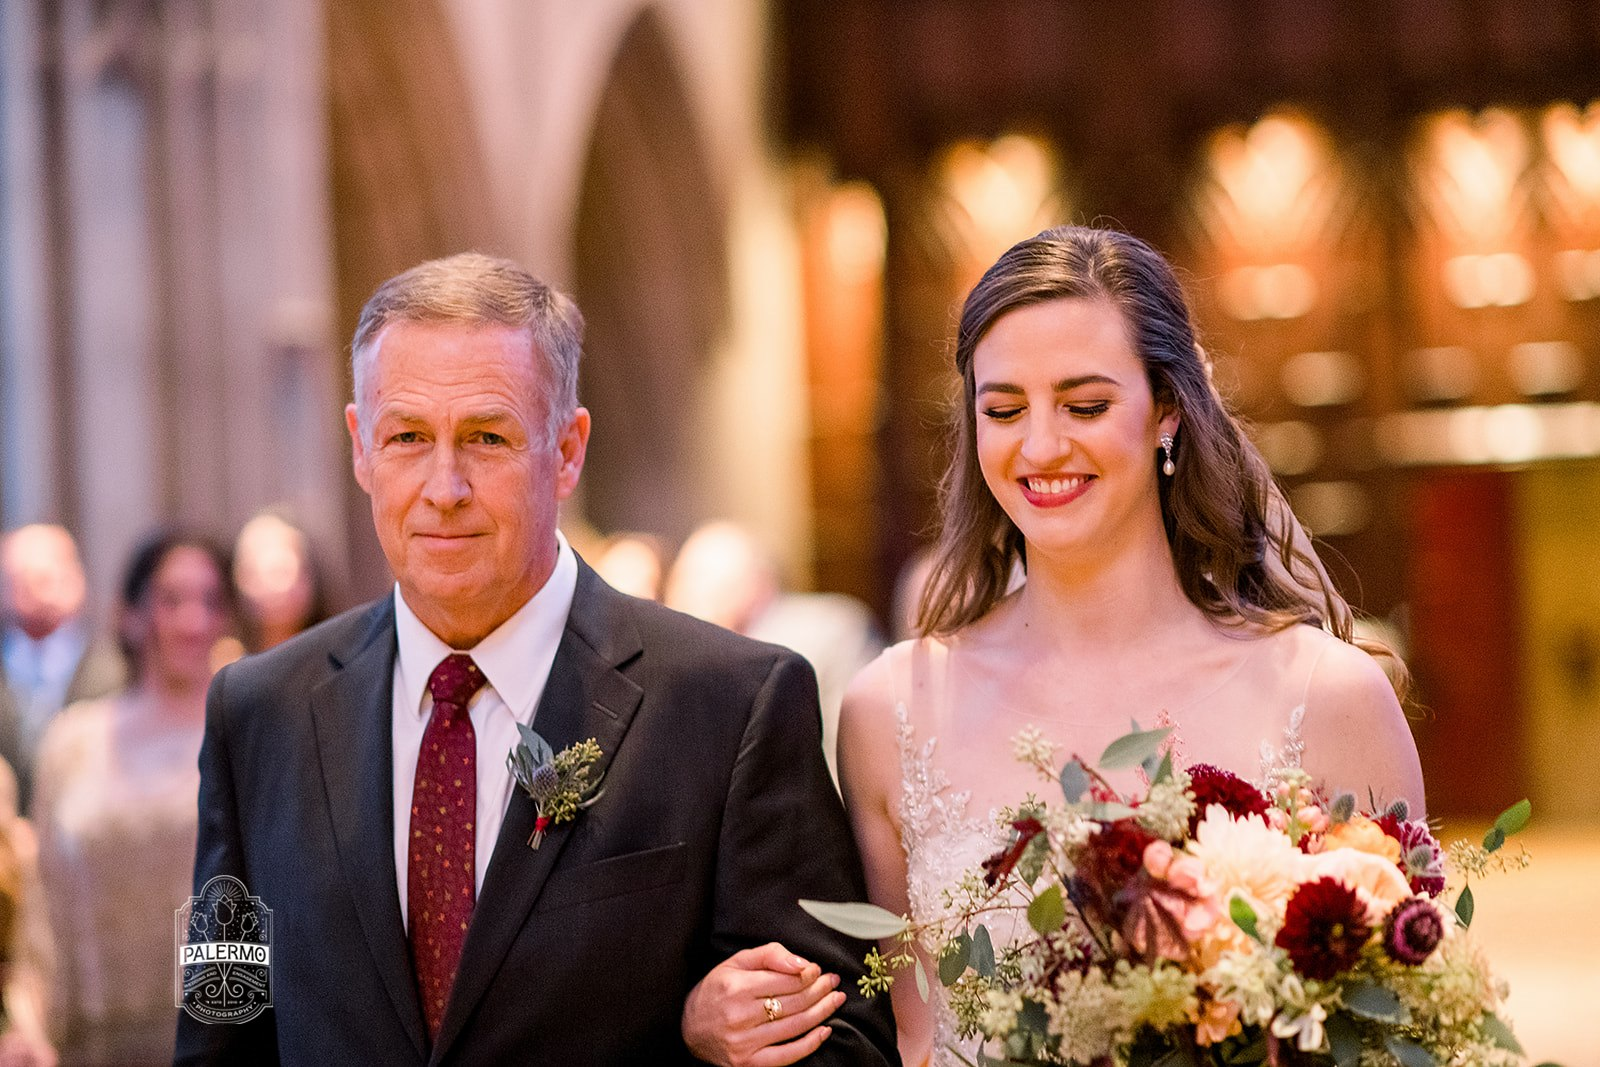 Bride walking down the aisle during wedding ceremony at Heinz Chapel in Pittsburgh, PA planned by Exhale Events. Find more wedding inspiration at exhale-events.com!